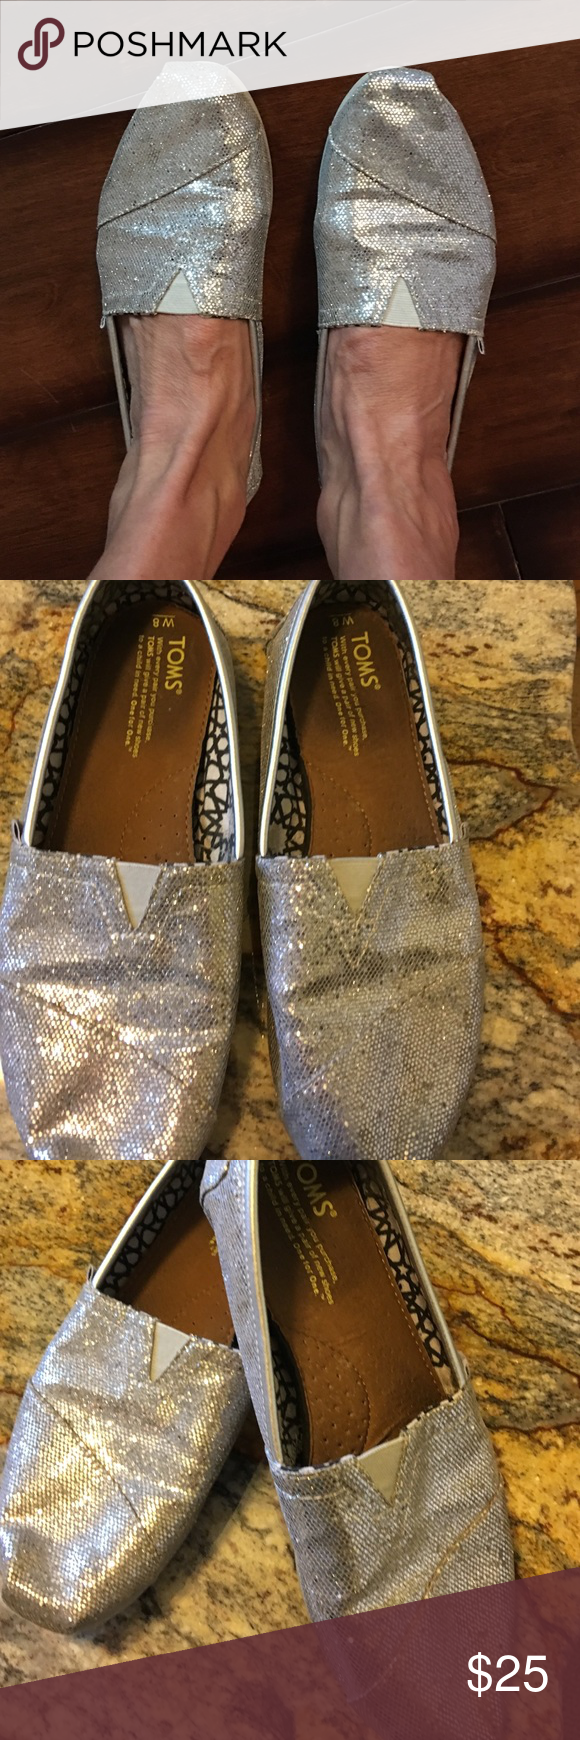 Toms silver glitter shoe Used but with no rips or cracks in shoe TOMS Shoes Espadrilles